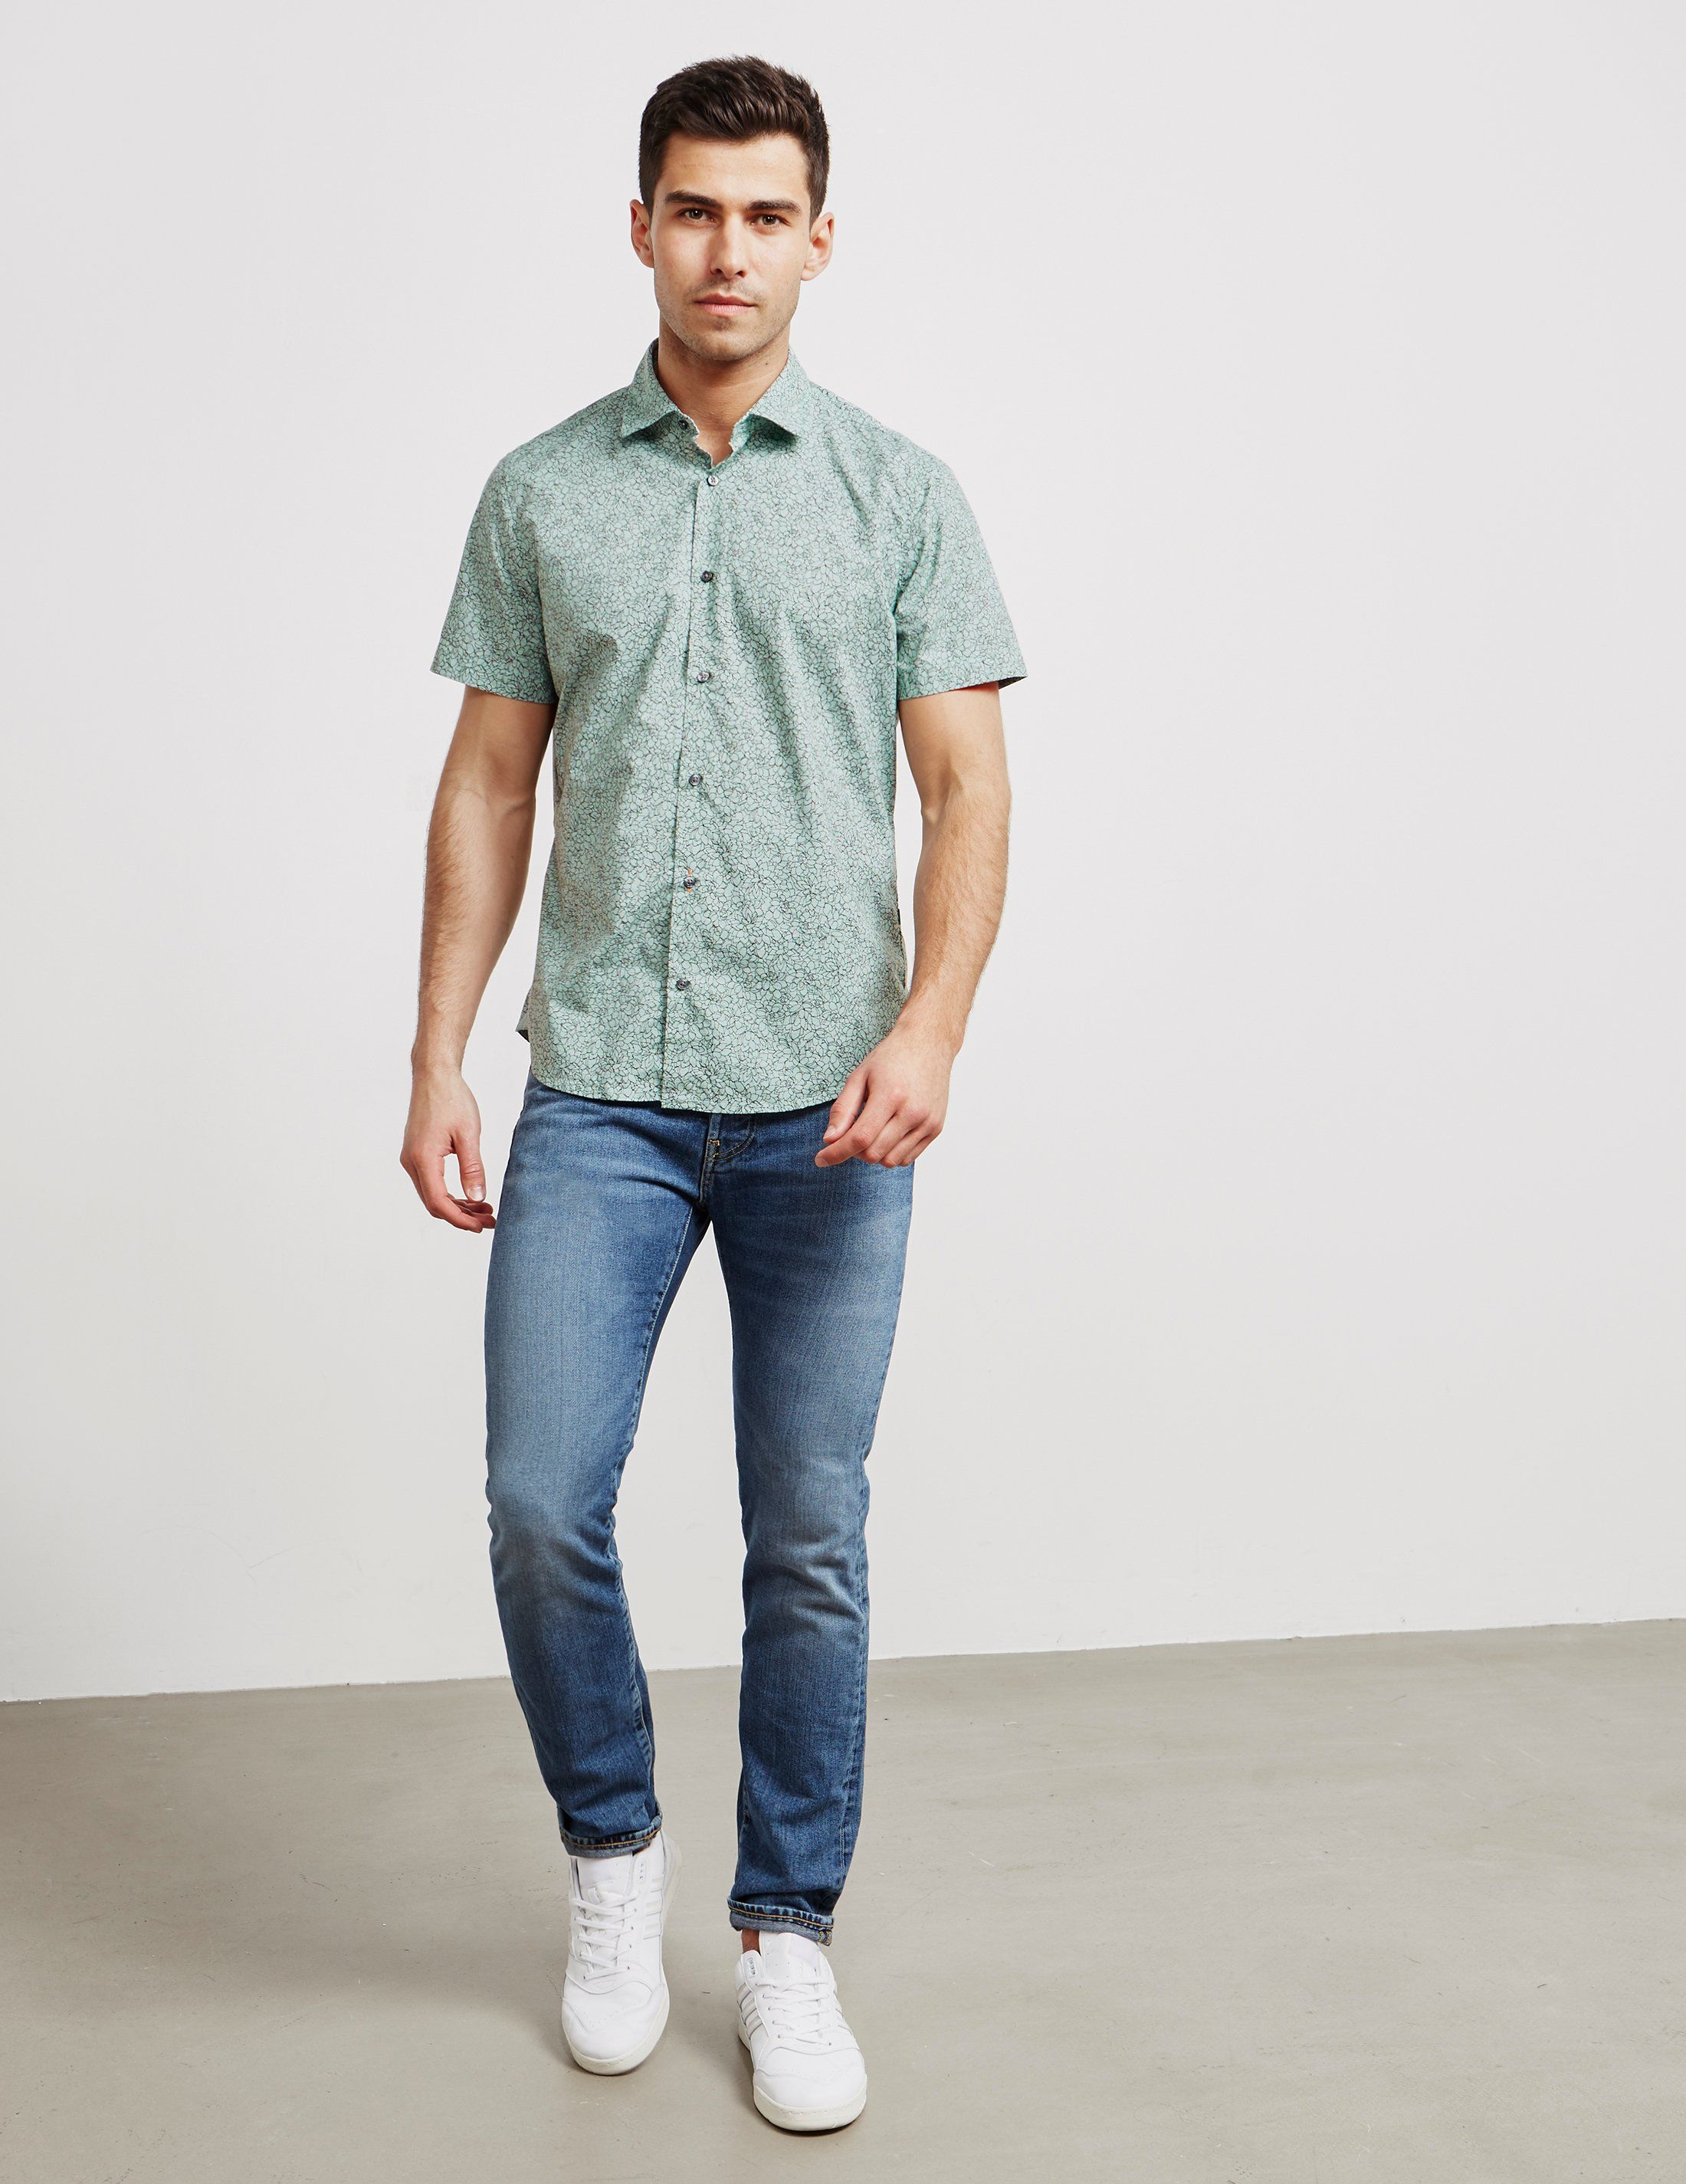 BOSS Rash Floral Short Sleeve Shirt